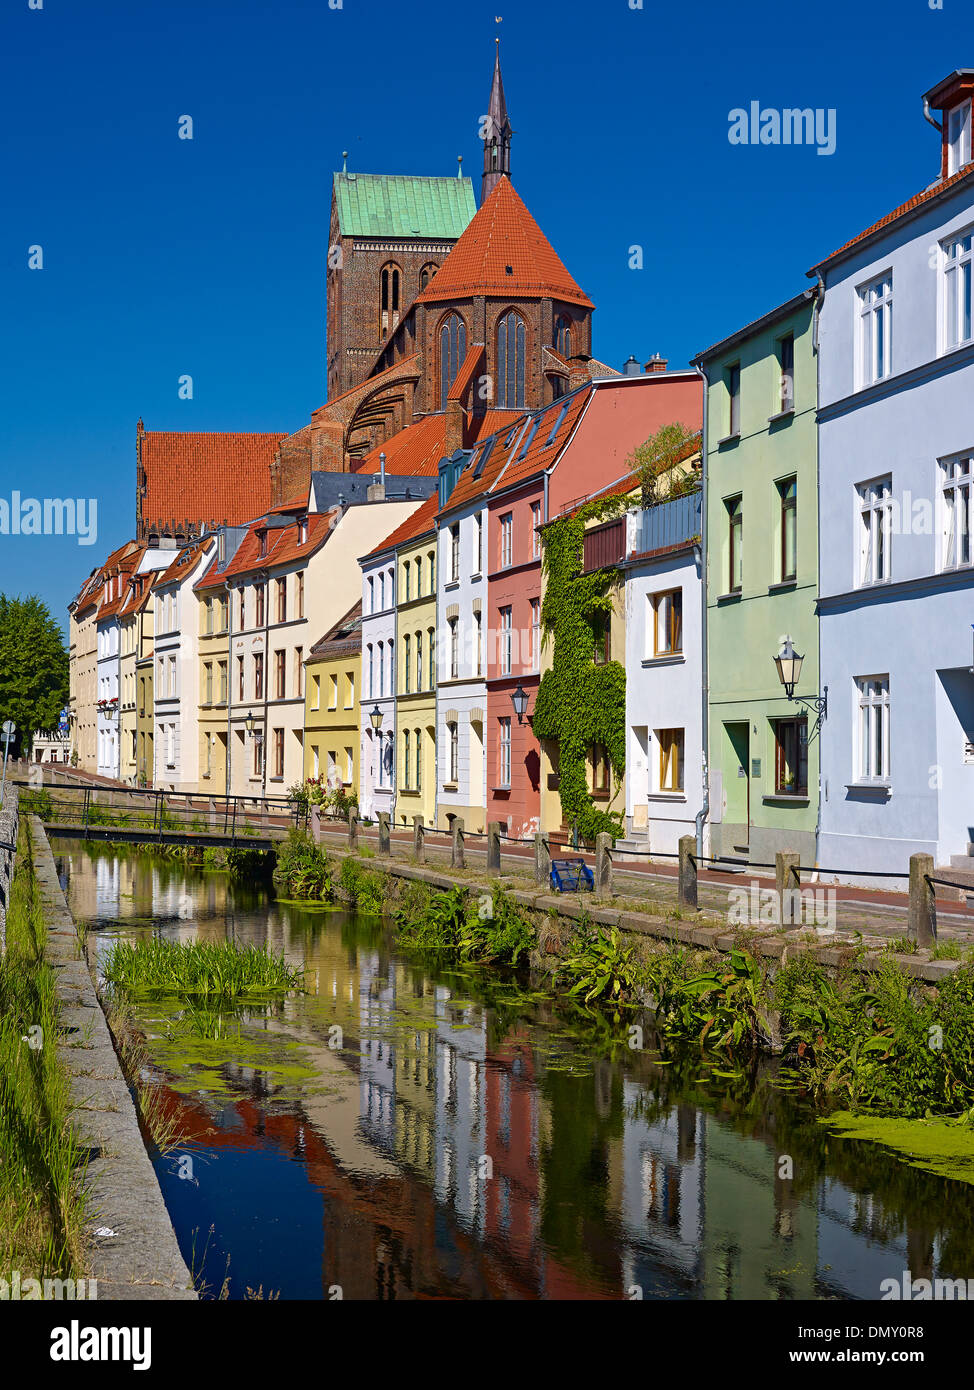 Muehlengrube River with St. Nicholas Church in Wismar, Mecklenburg-Vorpommern, Germany - Stock Image